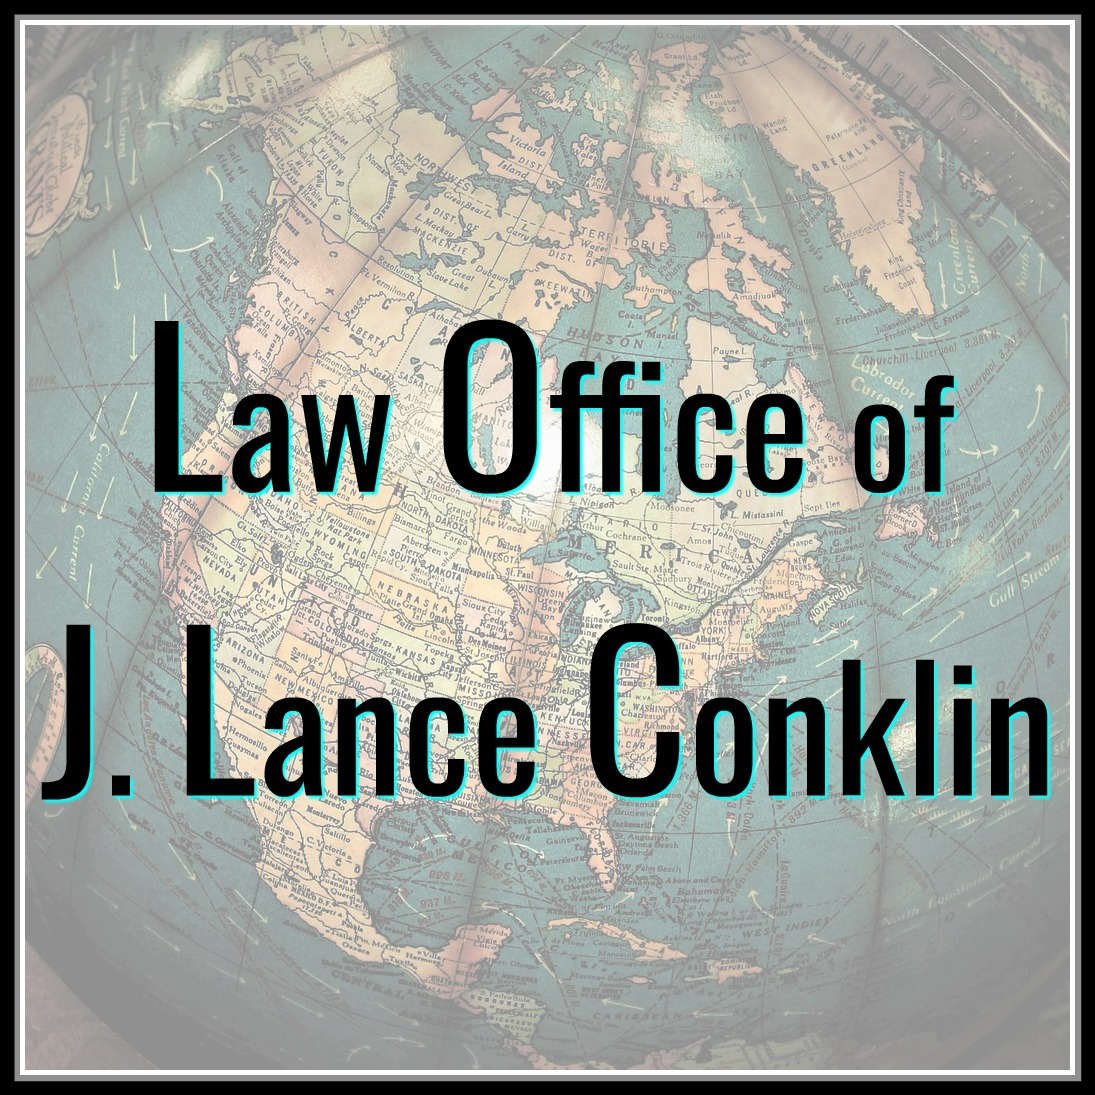 Law Office of J. Lance Conklin.jpg